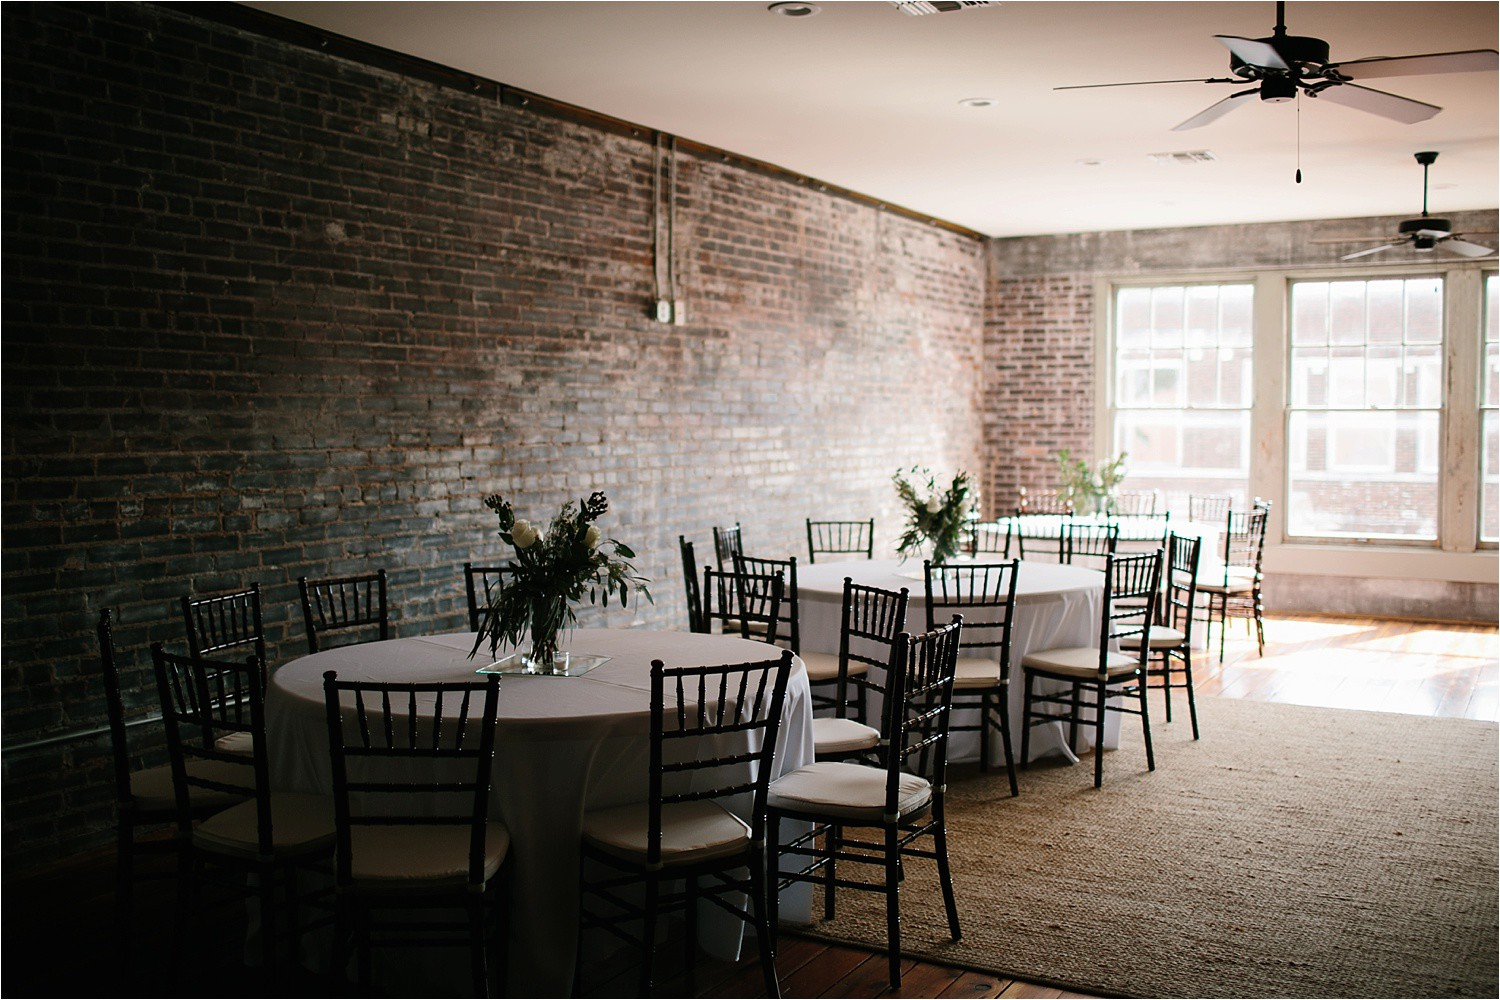 whittney-drew-__-an-intimate-wine-and-navy-wedding-in-an-industrial-venue-at-loft-123-in-paris-tx-by-north-texas-wedding-photographer-rachel-meagan-photography-_-007